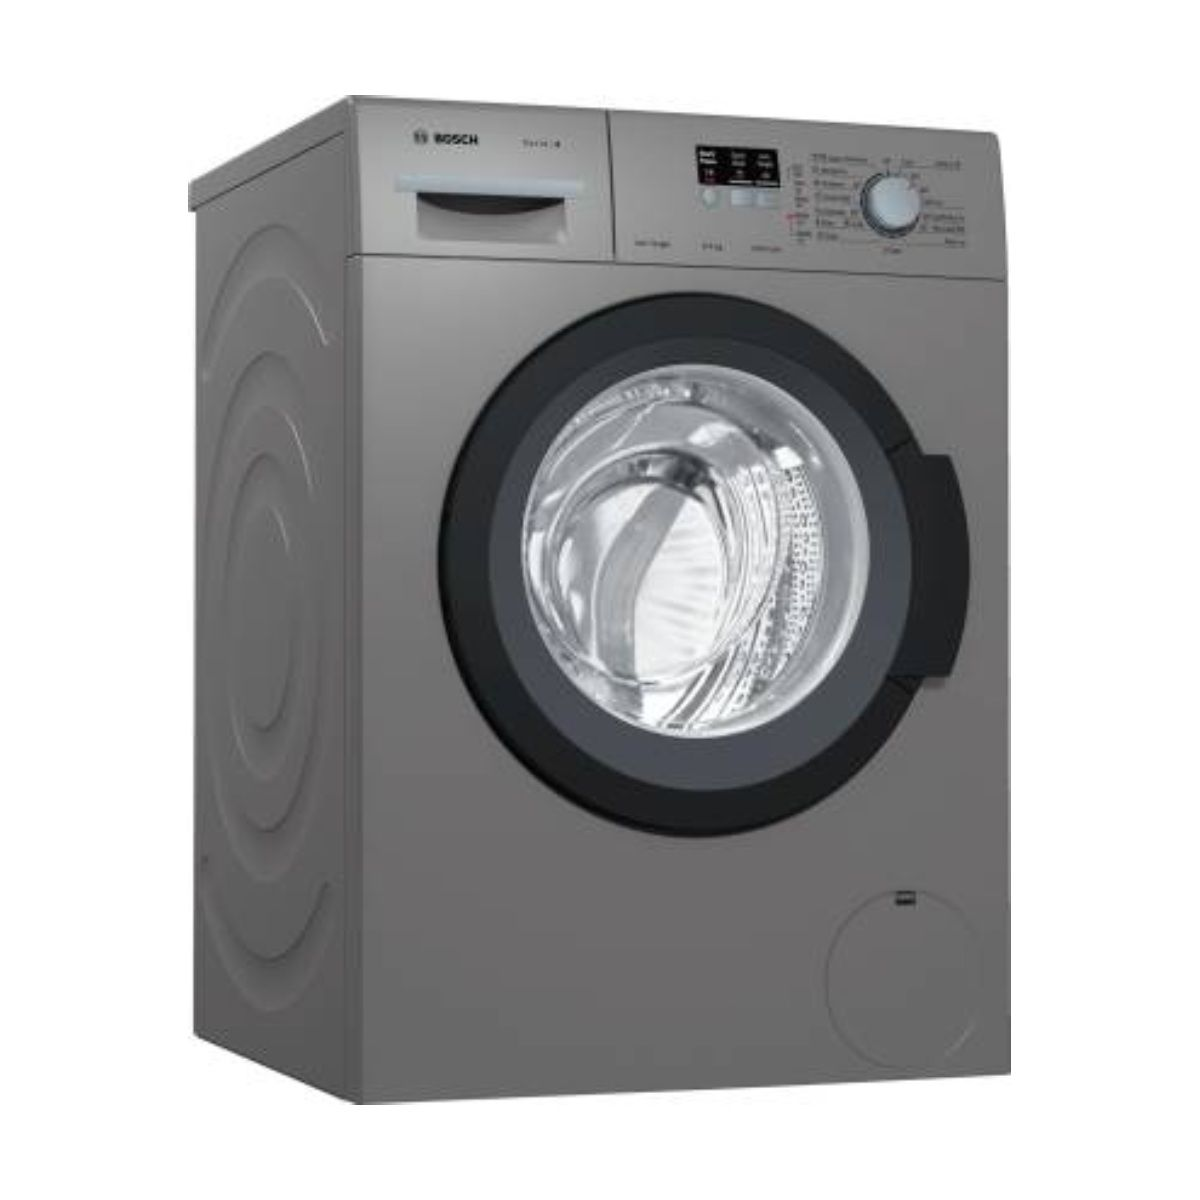 Bosch 6.5 kg Fully Automatic Front Load Washing Machine with In-built Heater Grey  (WAK2006PIN)